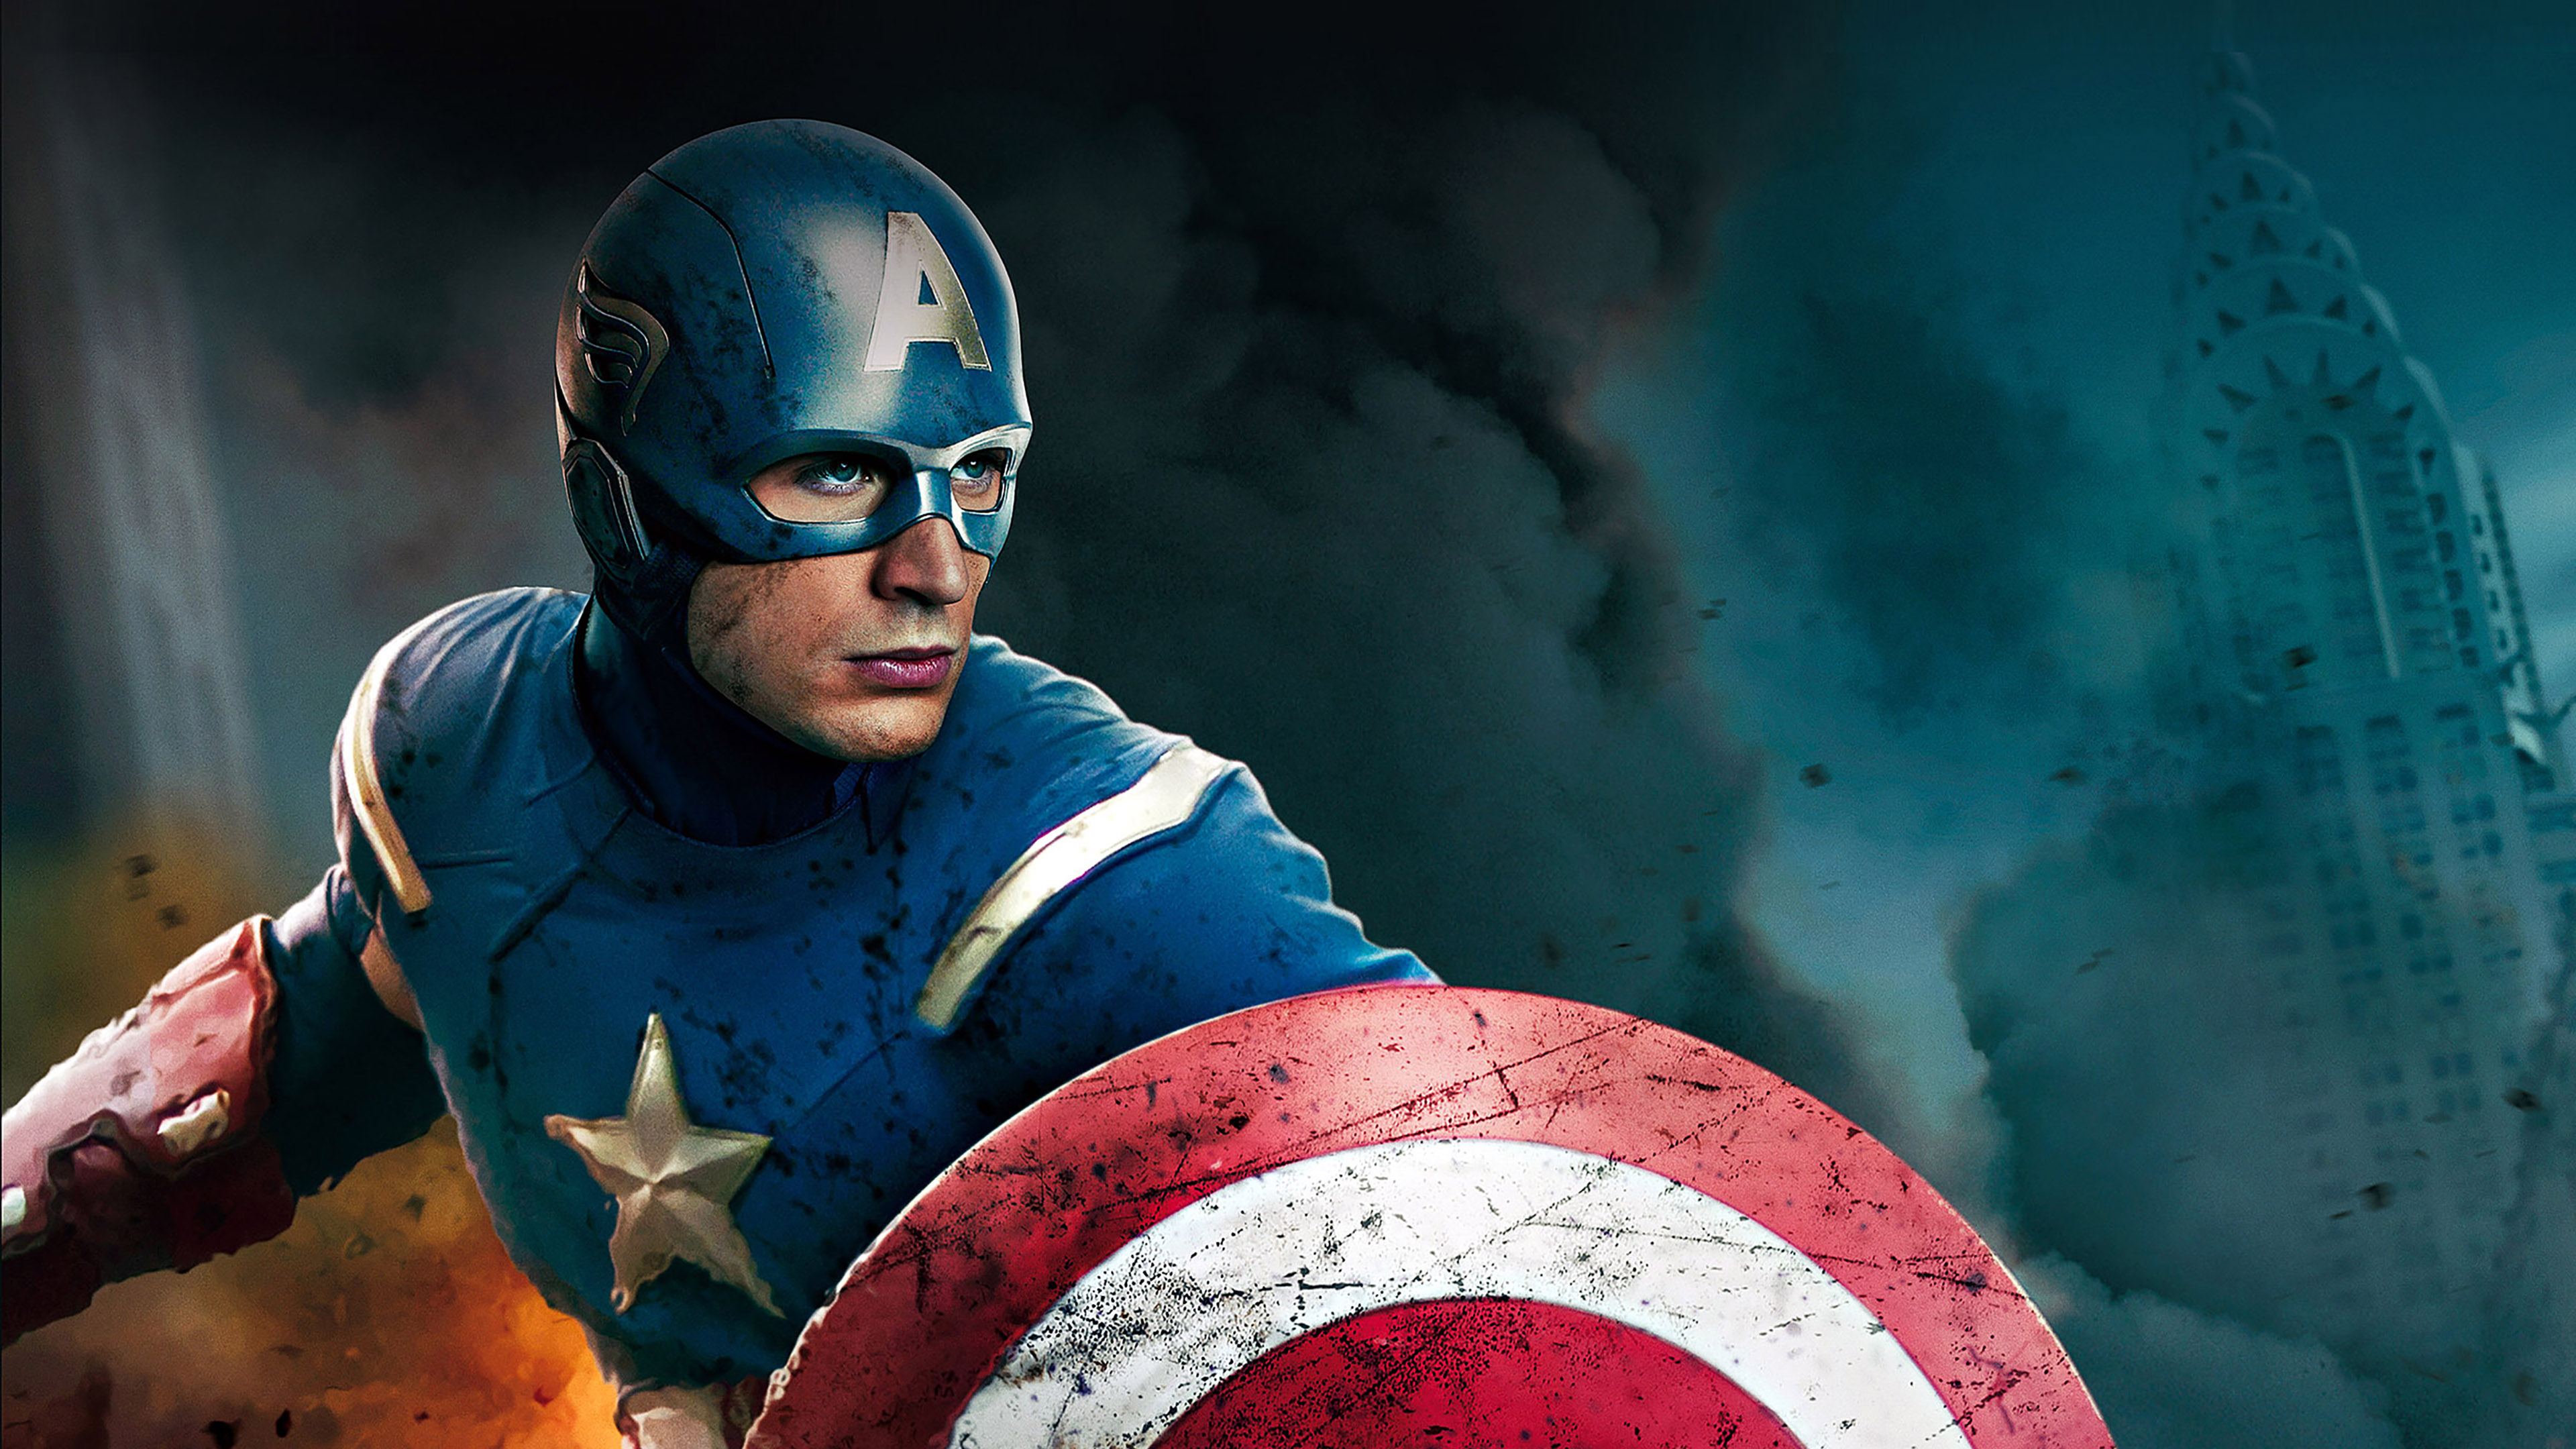 Popular Wallpaper Macbook Captain America - papers  Perfect Image Reference_4675.jpg